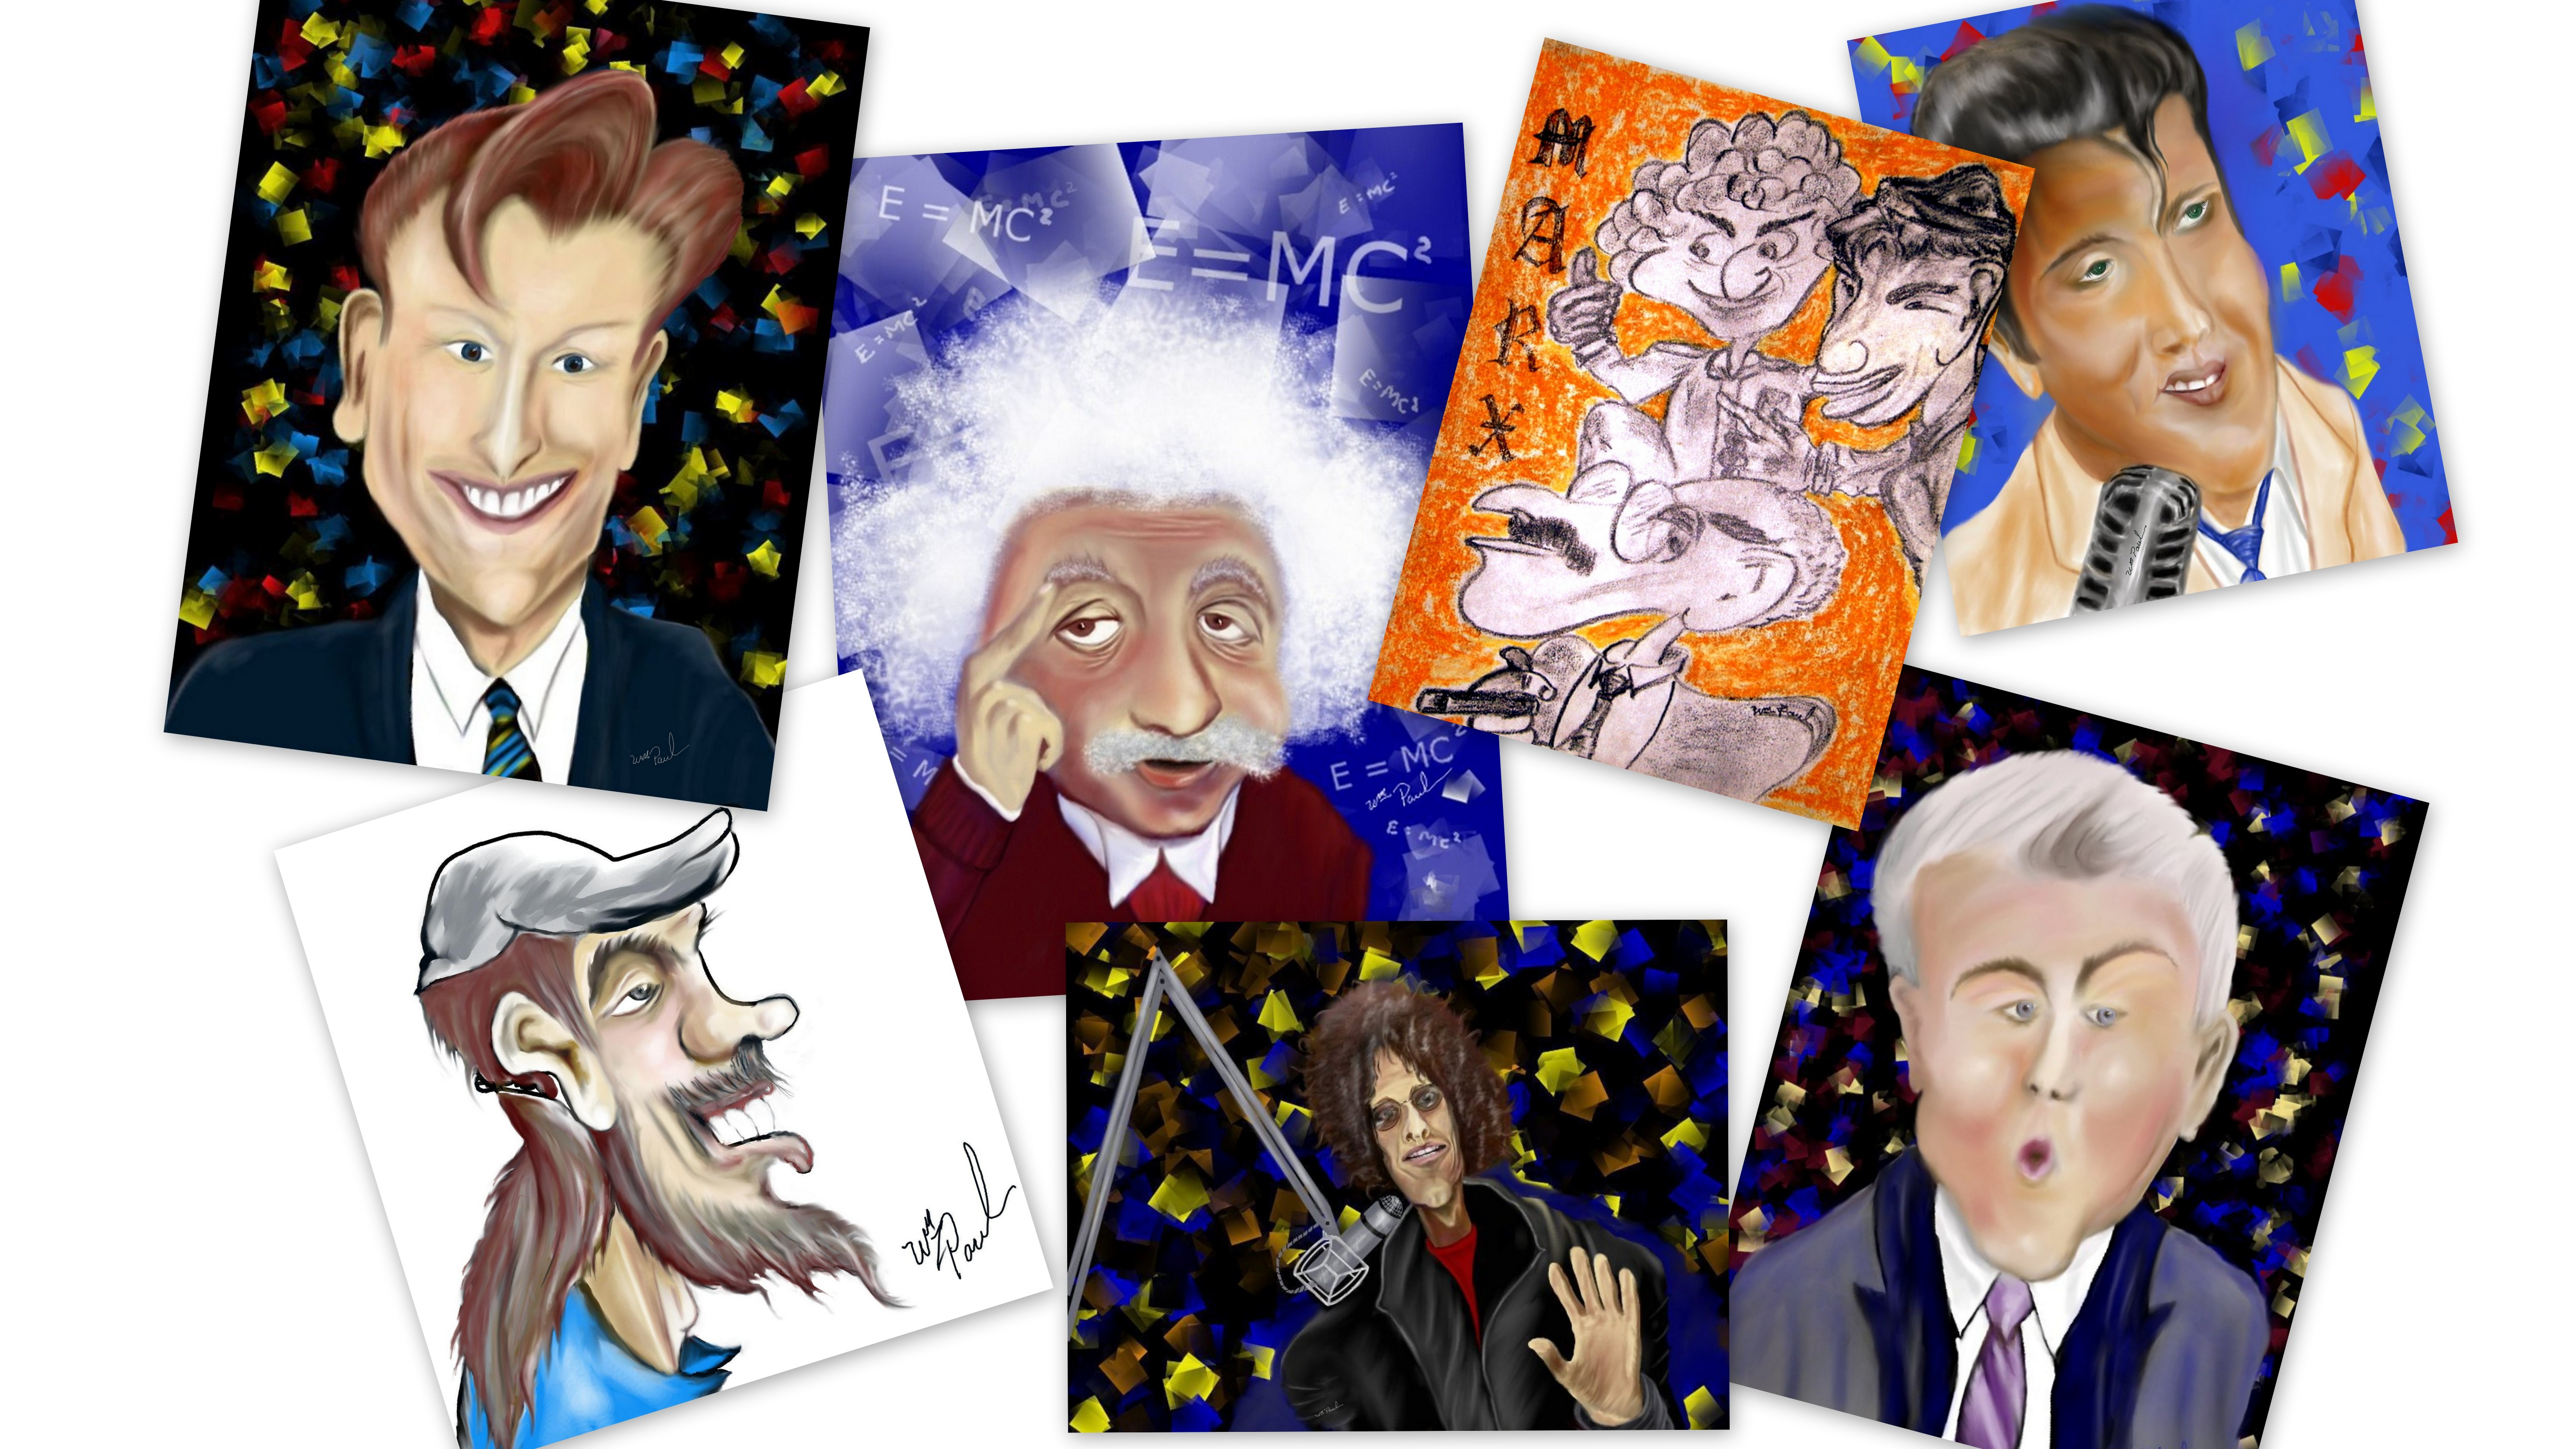 CaricatureCollage